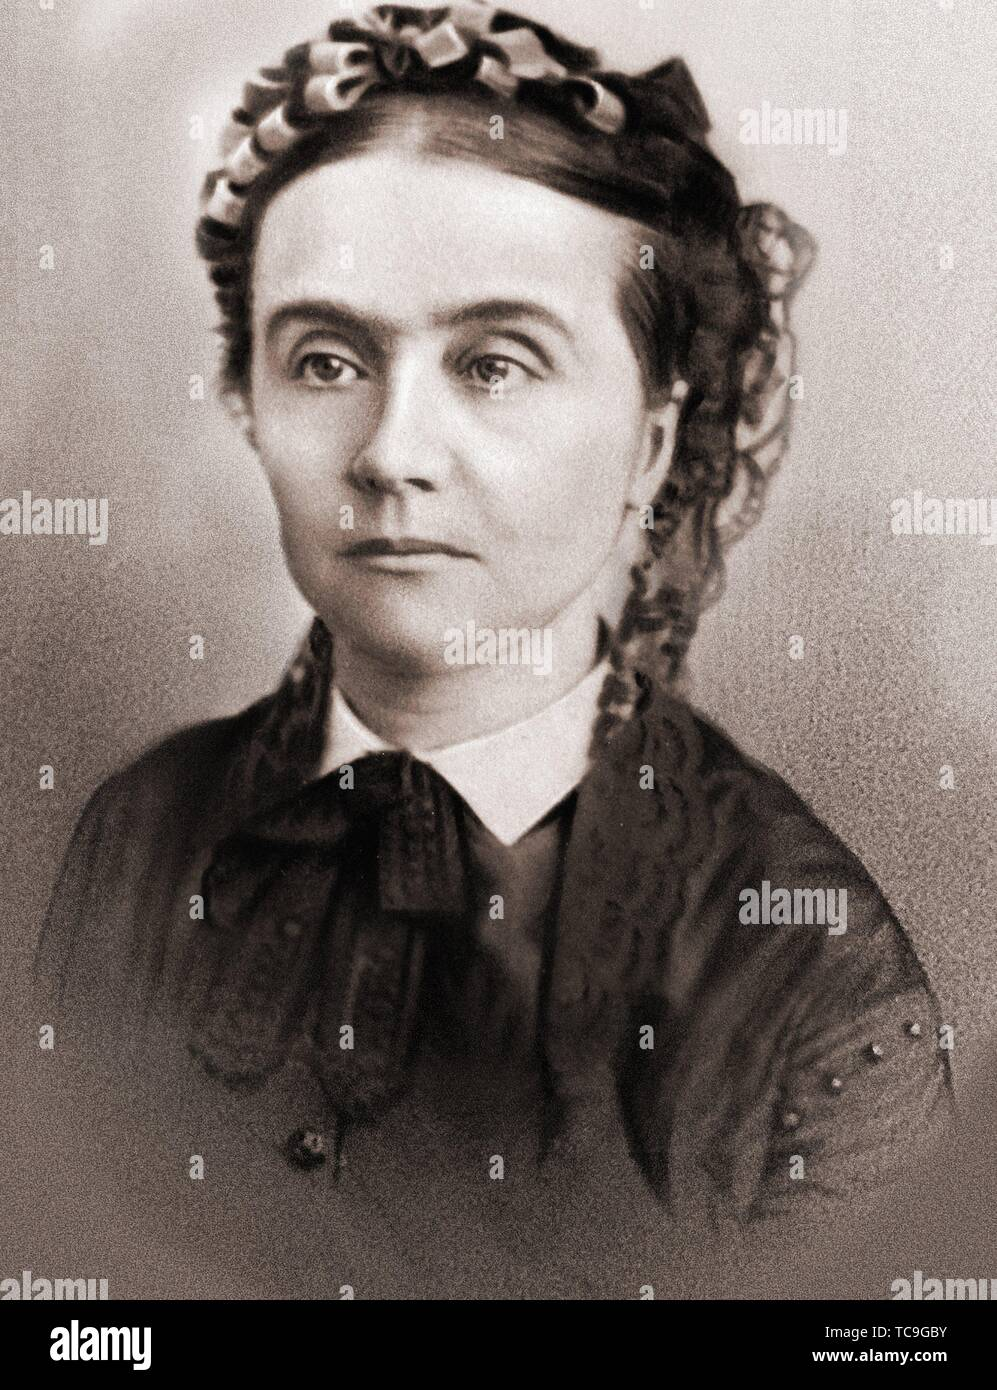 Tante Leonie Elisabeth Proust Amiot, aunt of Marcel Proust, a character on Proust's 'In Search of Lost Time' - Stock Image